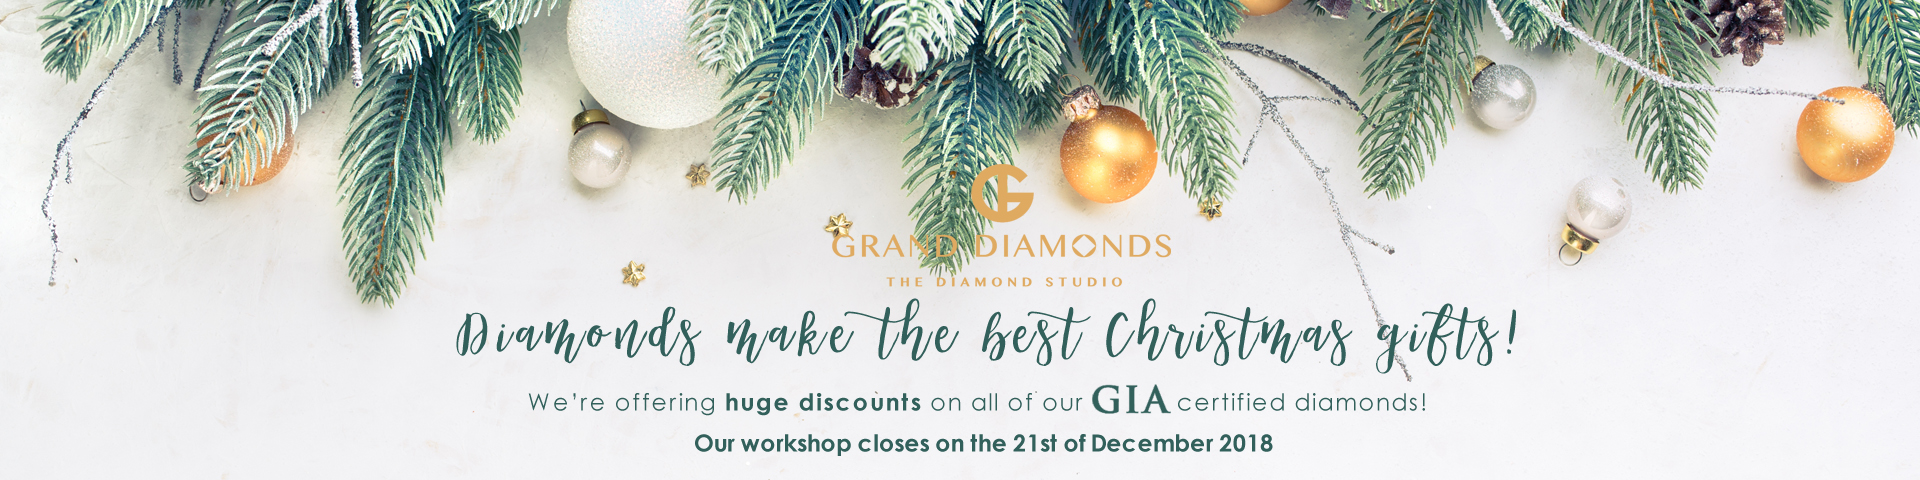 Grand-Diamonds-WEB-Banner-Xmas-2019